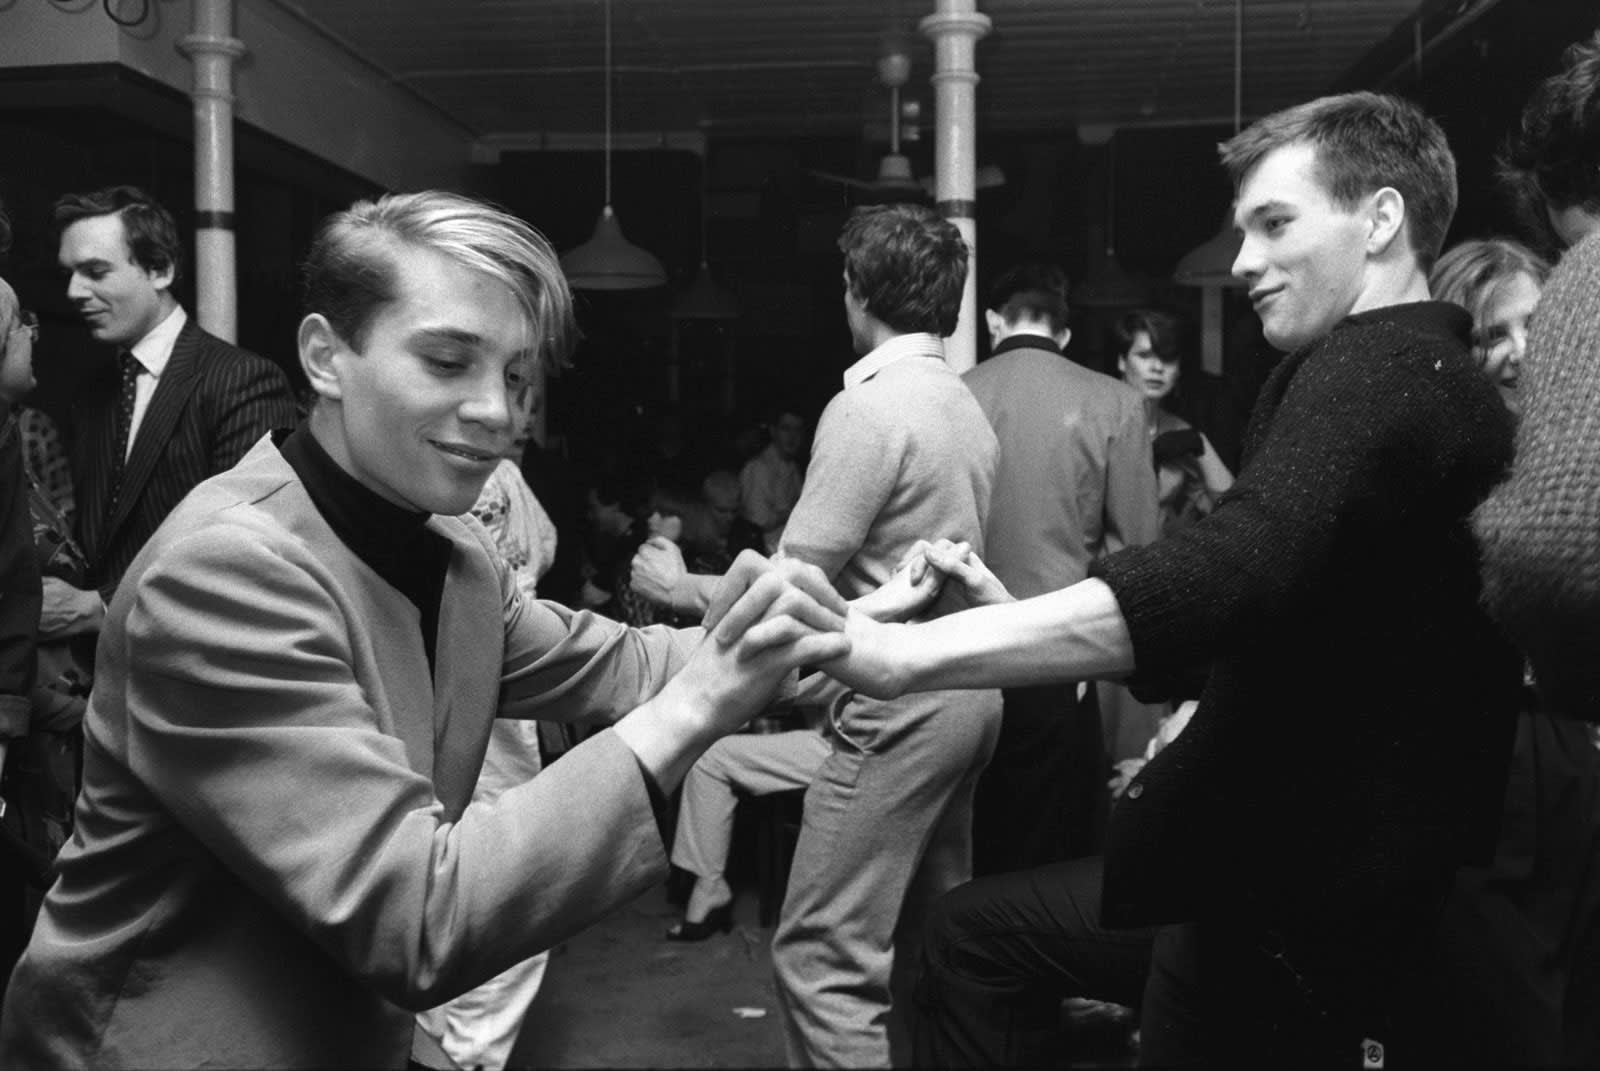 Homer Sykes, Boys dancing together at the Blitz Club, Covent Garden, London, 1980